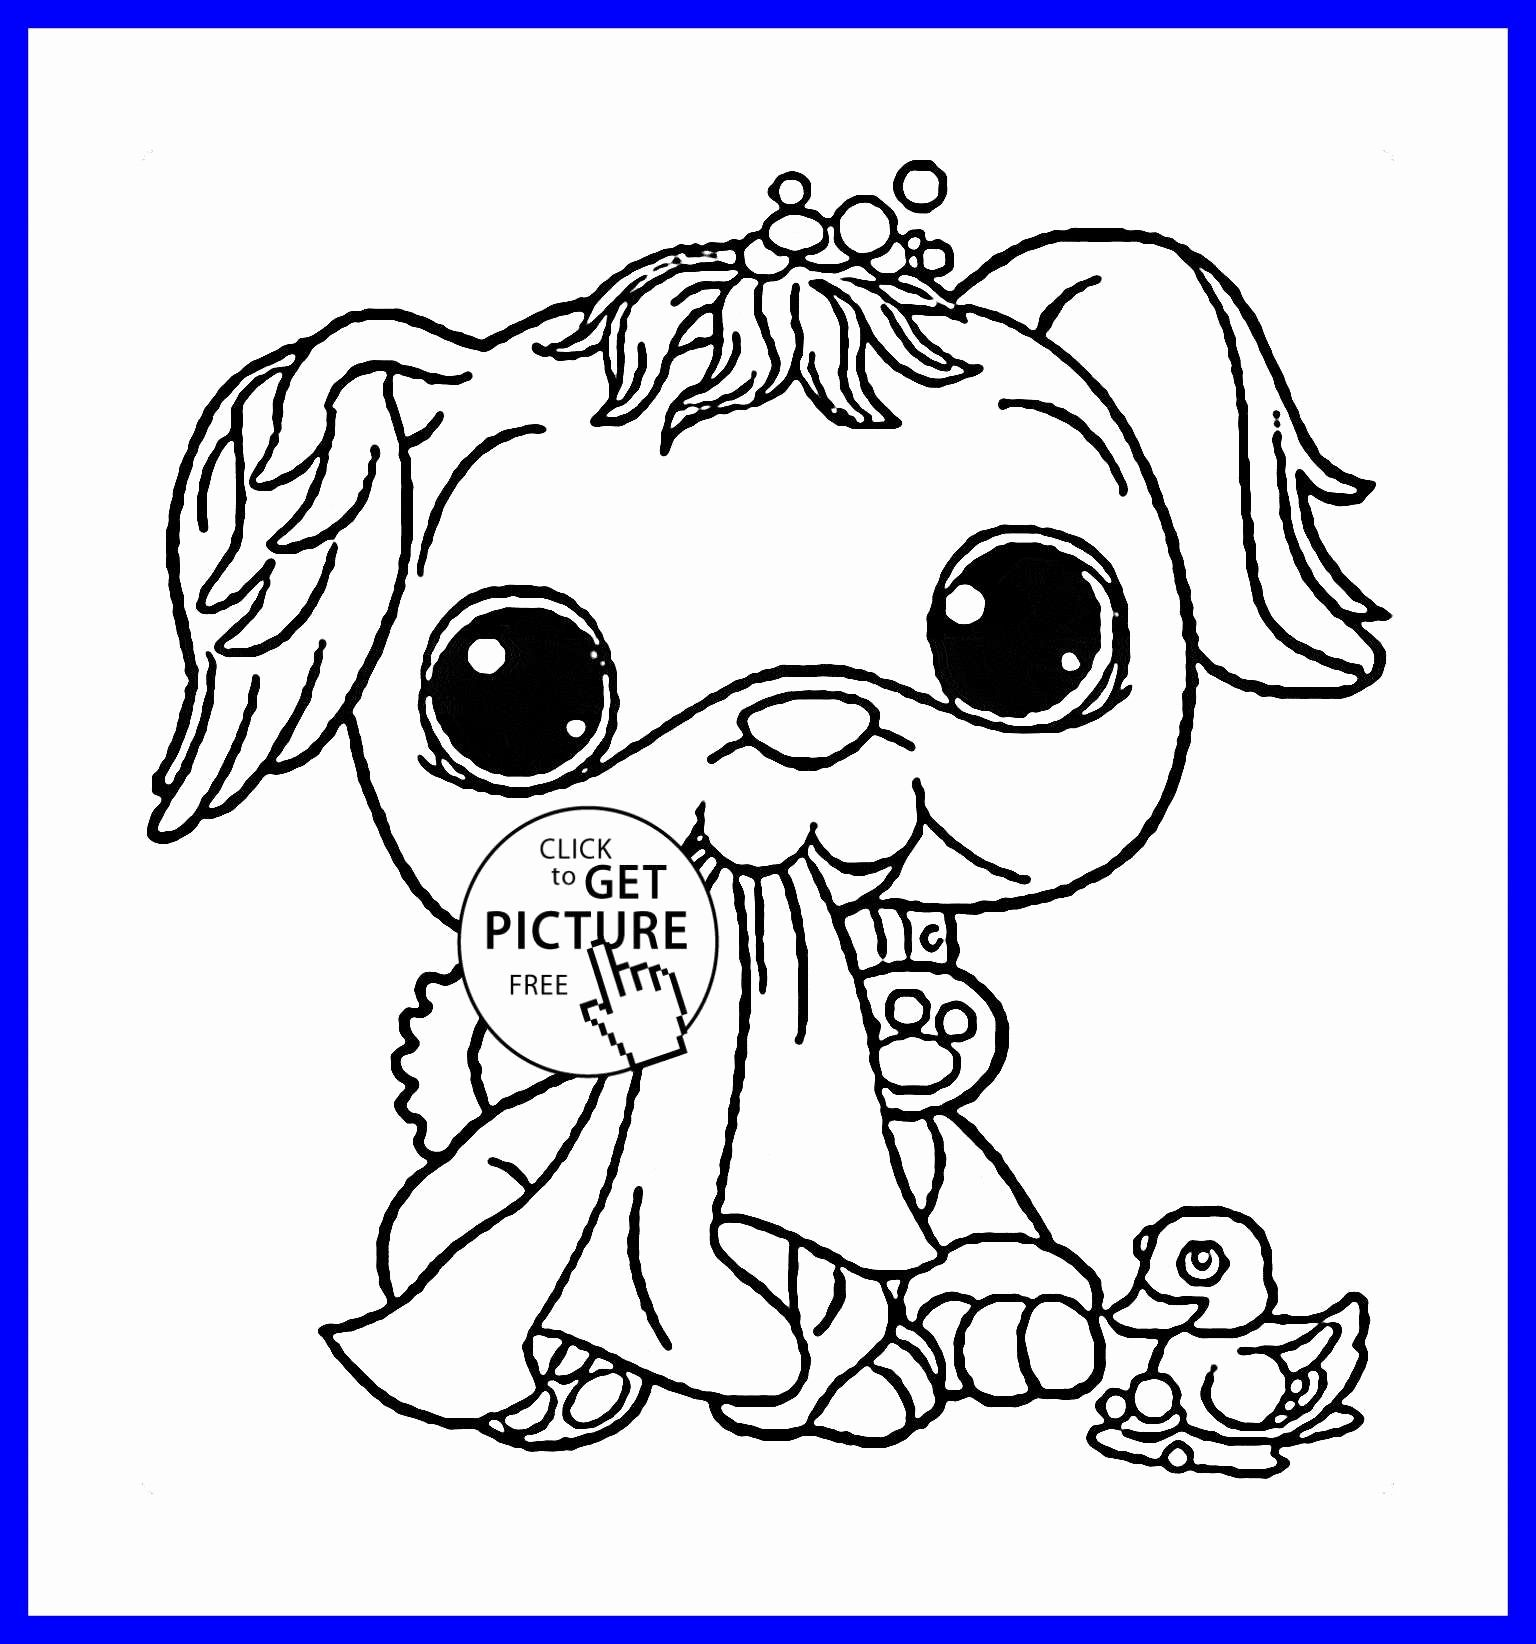 Printable Christmas Cat Coloring Pages Elegant 22 Kitty Cat Coloring Pages Printable Collection Co Puppy Coloring Pages Dog Coloring Page Animal Coloring Pages [ 1644 x 1536 Pixel ]